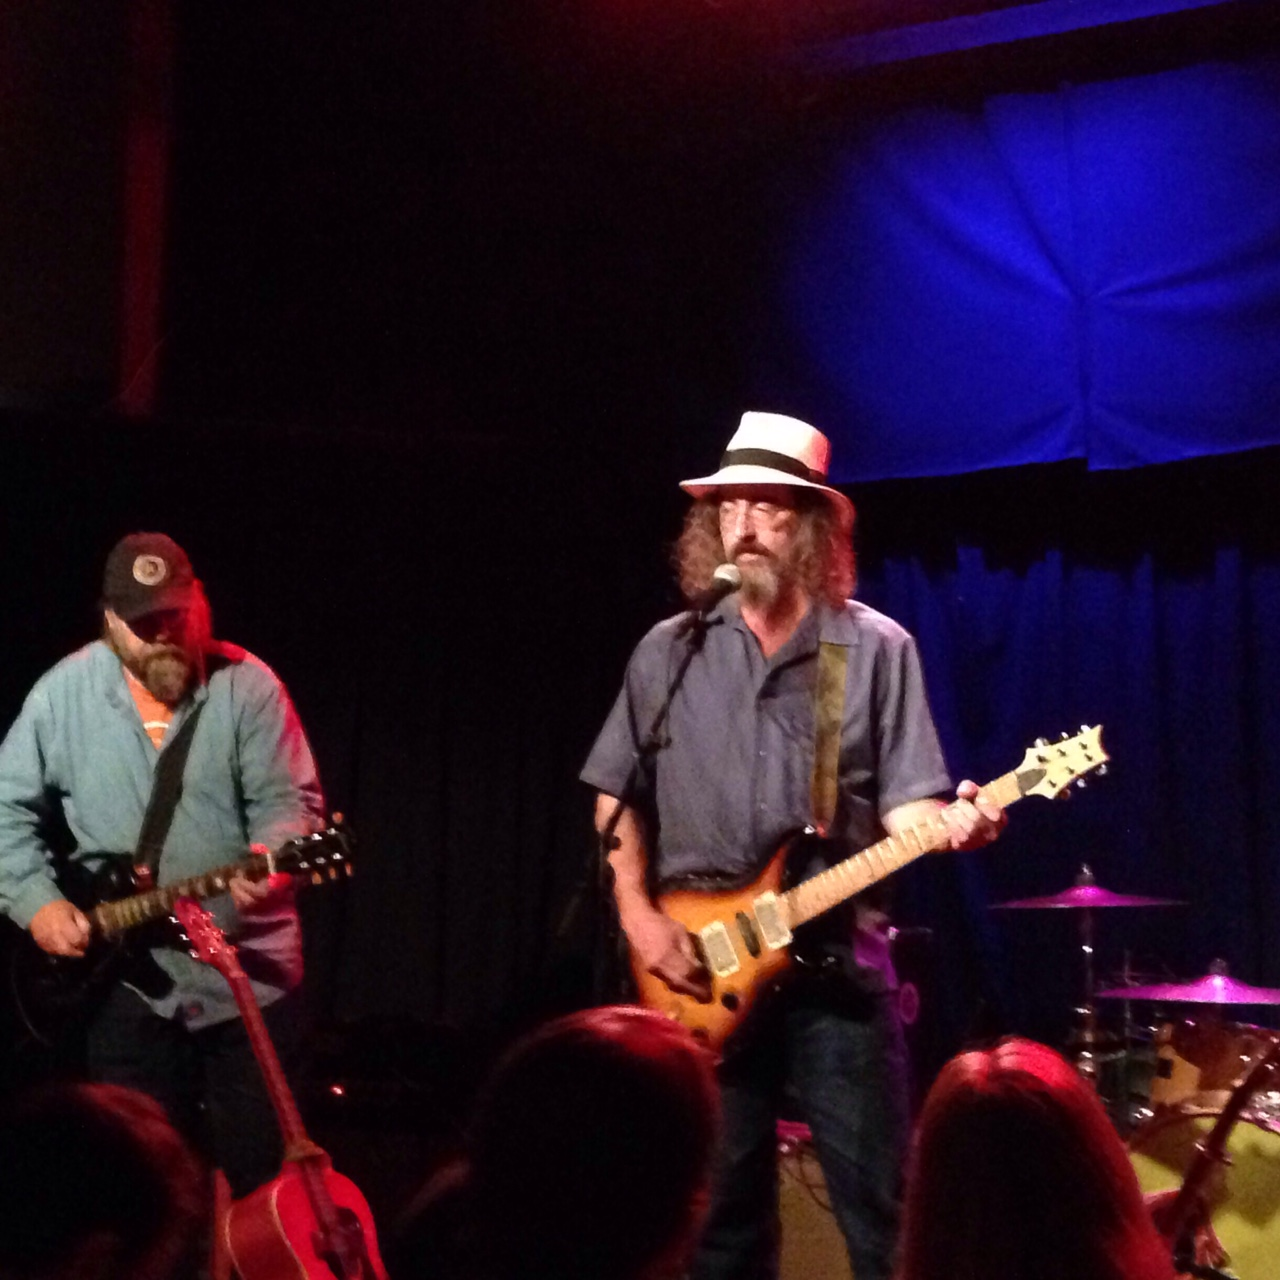 McMurtry live